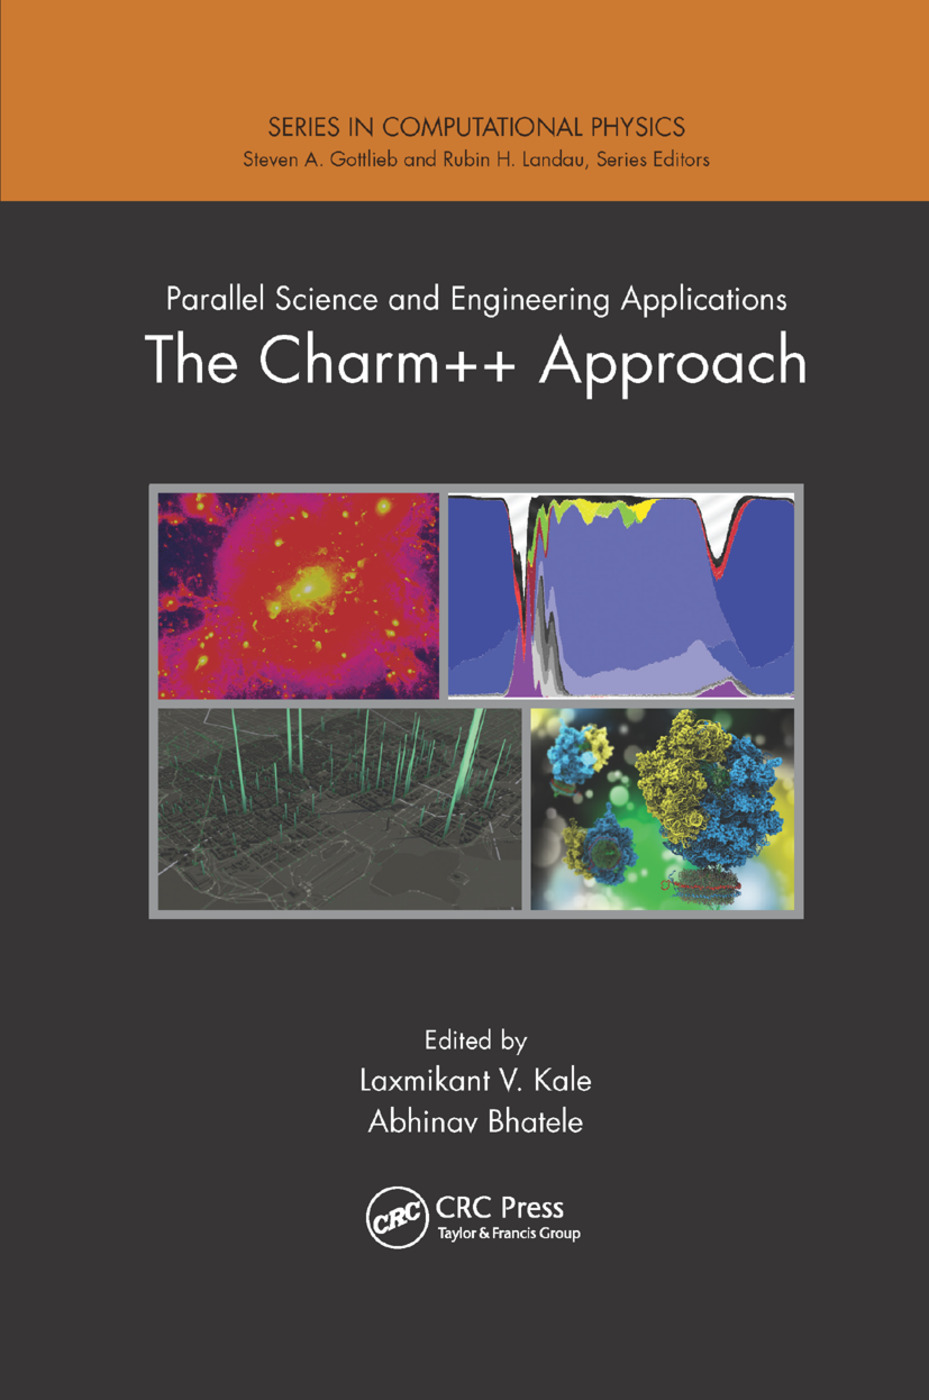 Parallel Science and Engineering Applications: The Charm++ Approach book cover